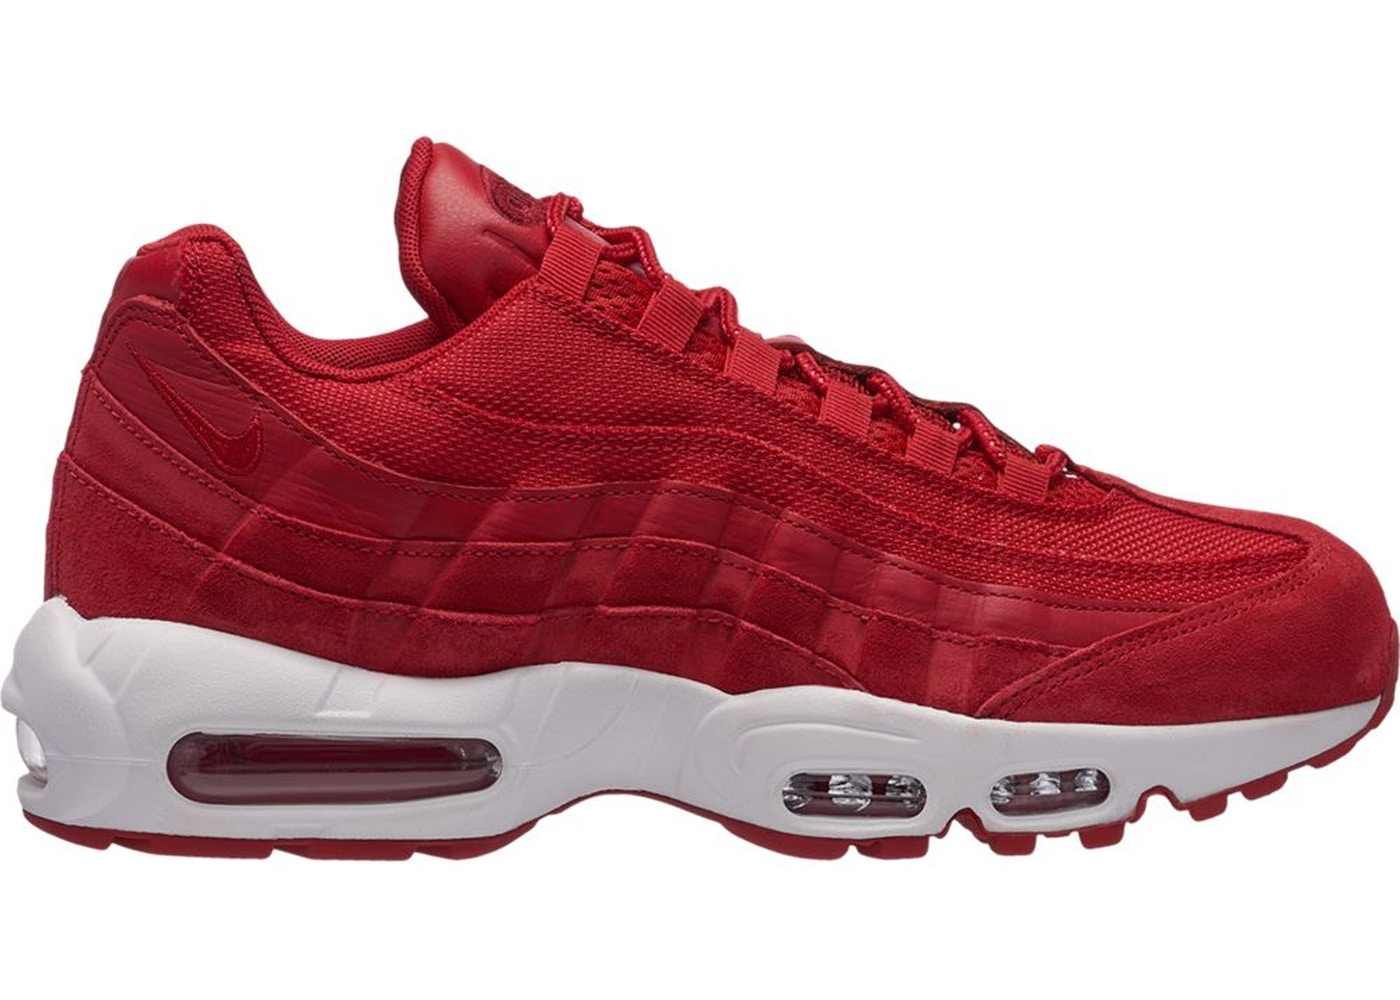 detailed look d9a24 ec699 Air Max 95 Gym Red Team Red